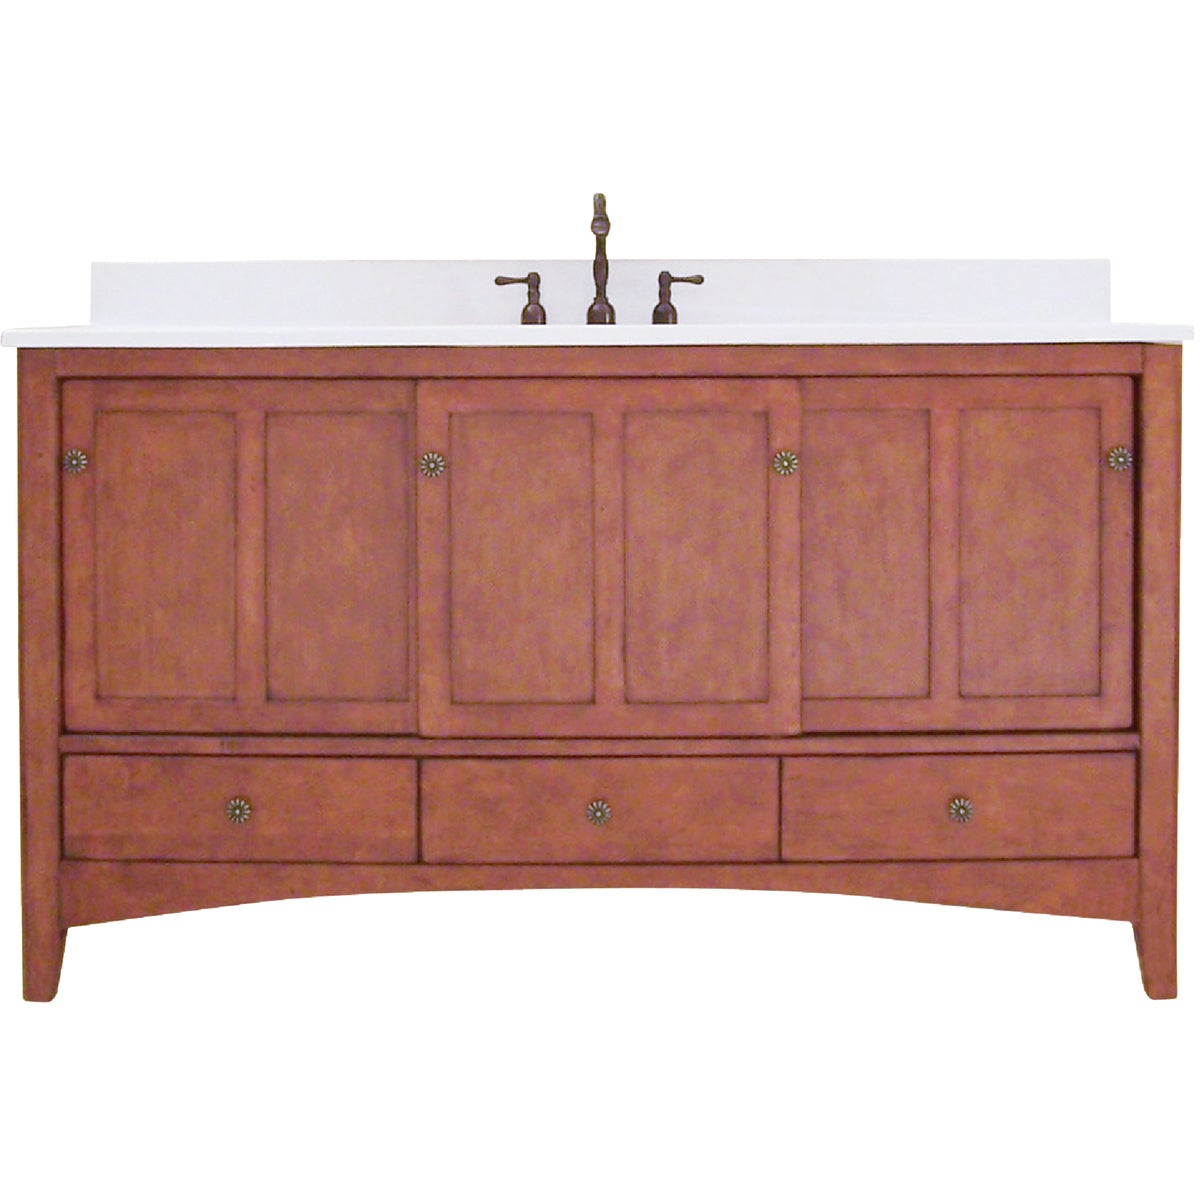 60X21 EXPRESSIONS VANITY - EP6021D by Sunnywood Products